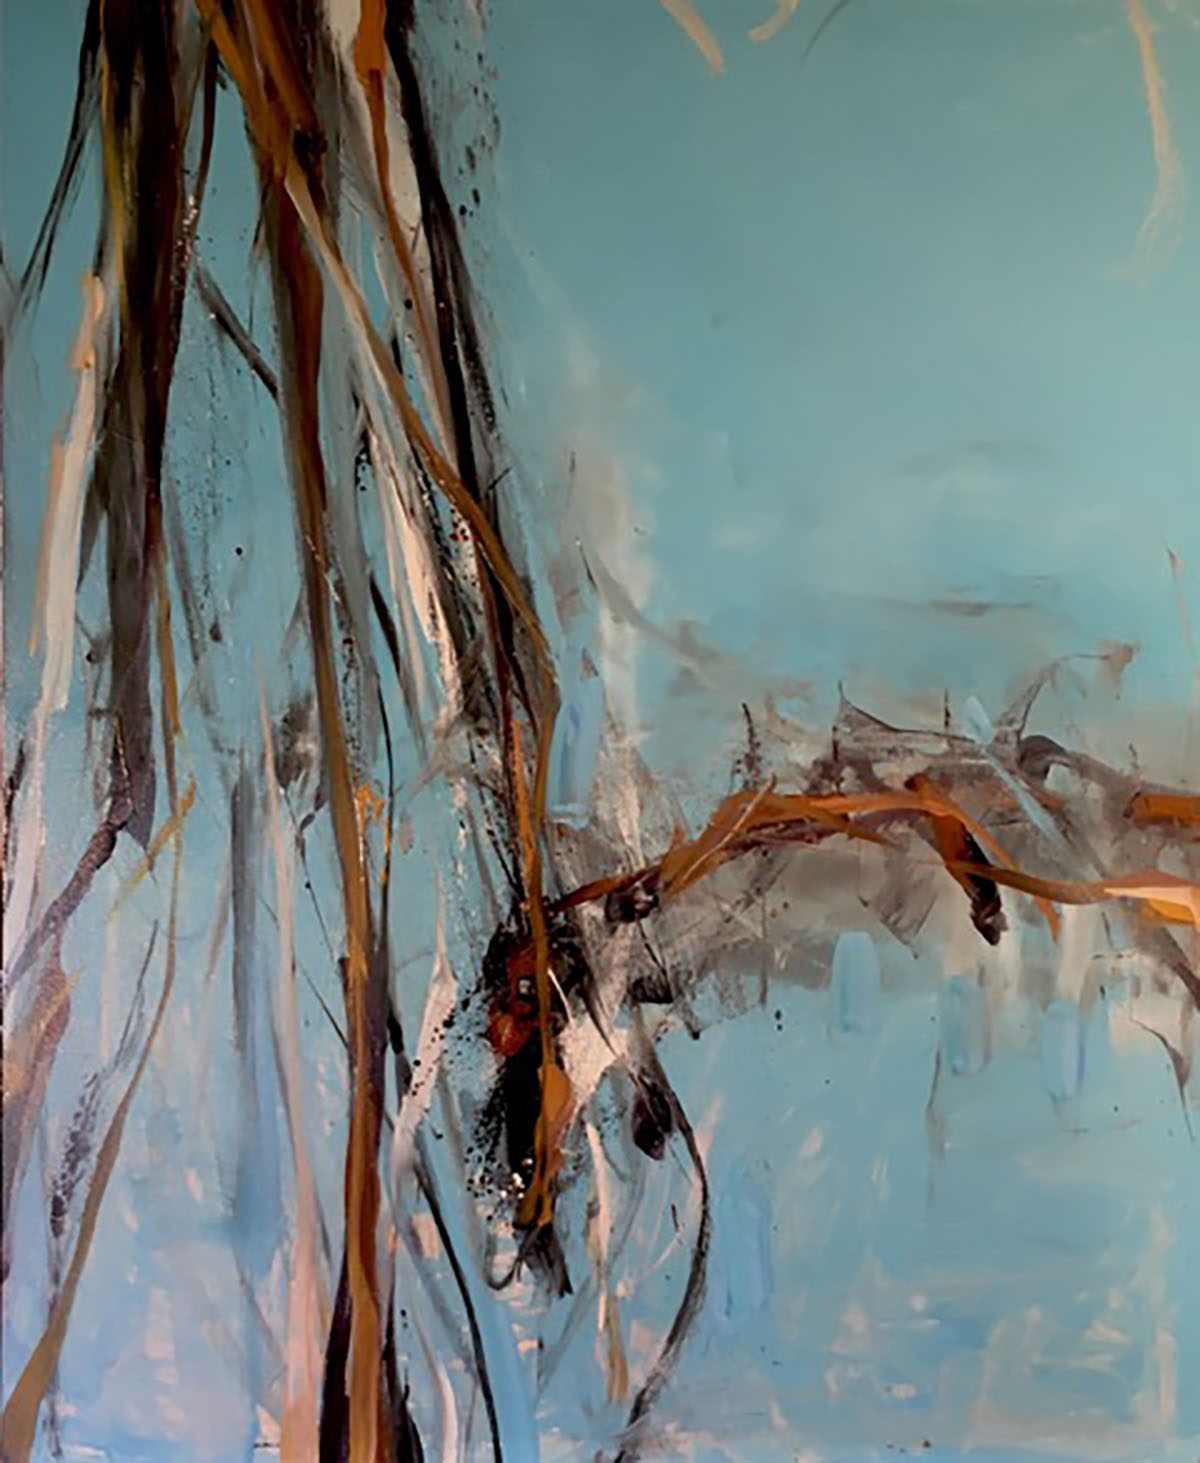 Tom Lieber / Blue Inversion, 88 x 72 inches / oil on canvas